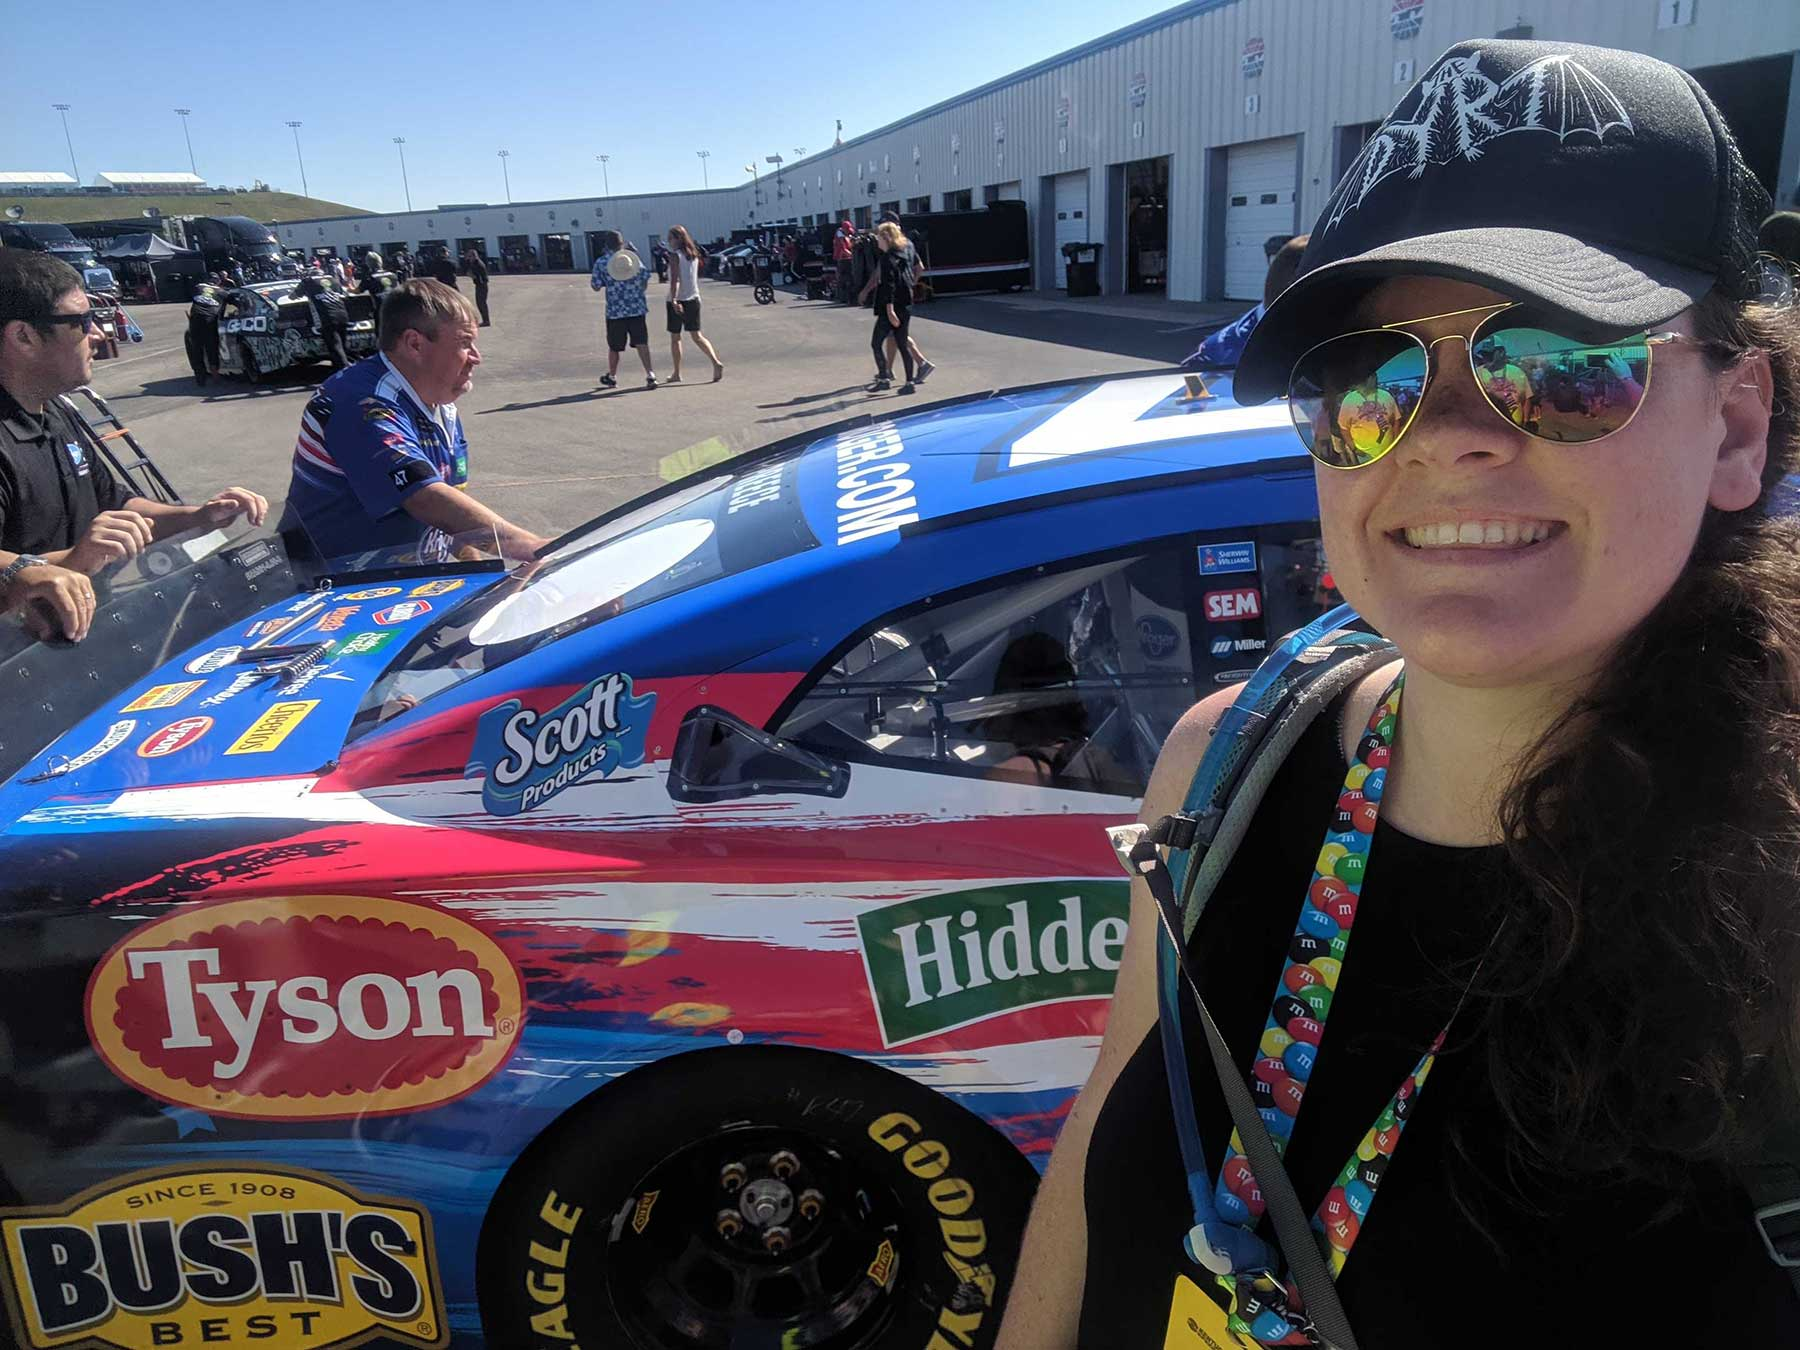 Writer with sunglasses and black baseball cap poses in front of Nascar car.